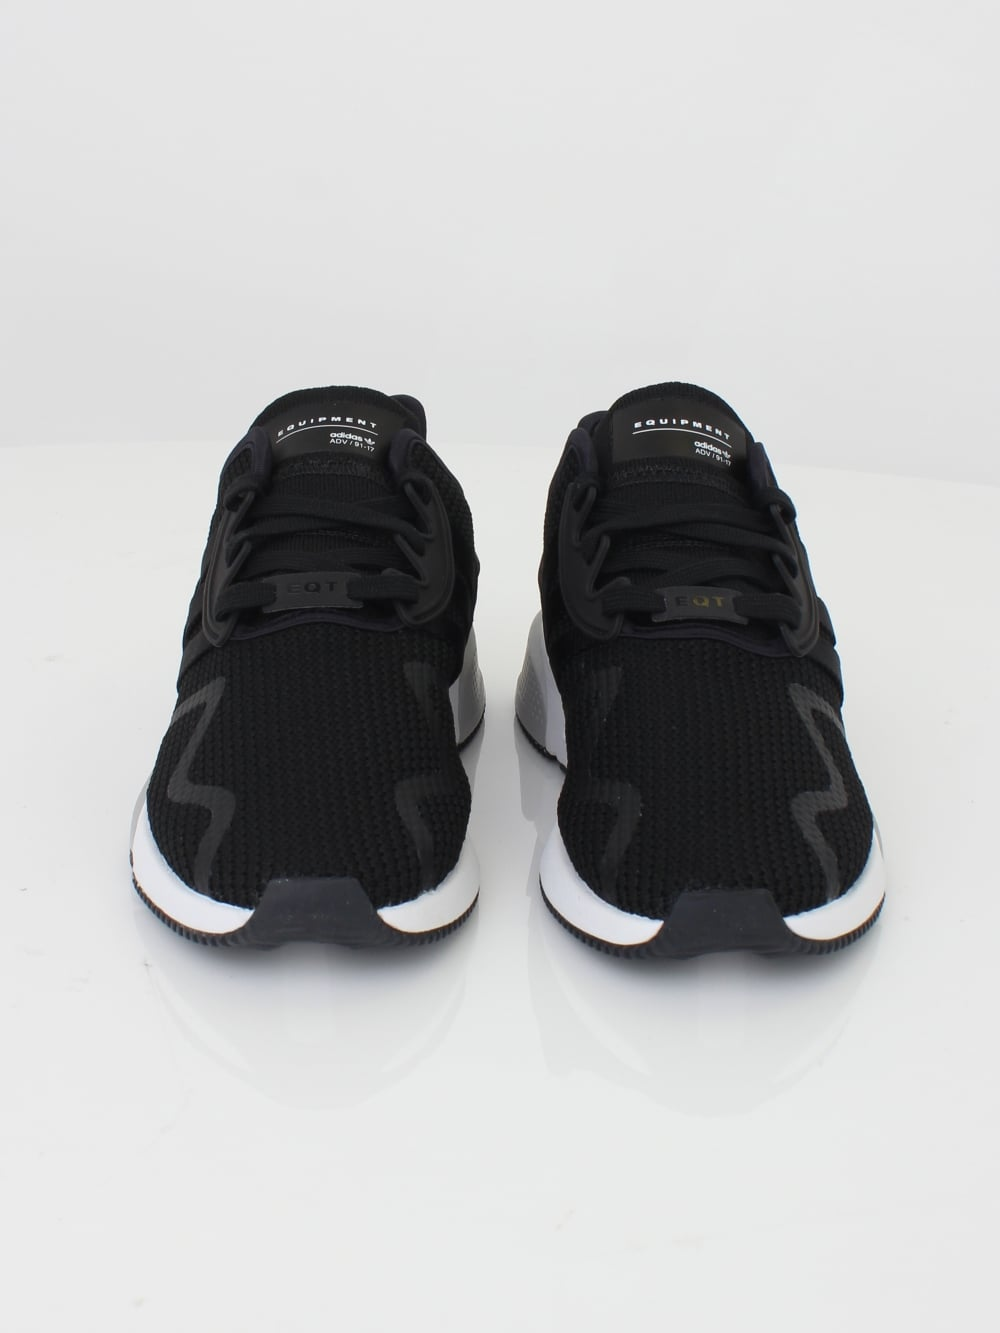 e11a15a11adafd Adidas EQT Cushion Advantage in Black - Northern Threads